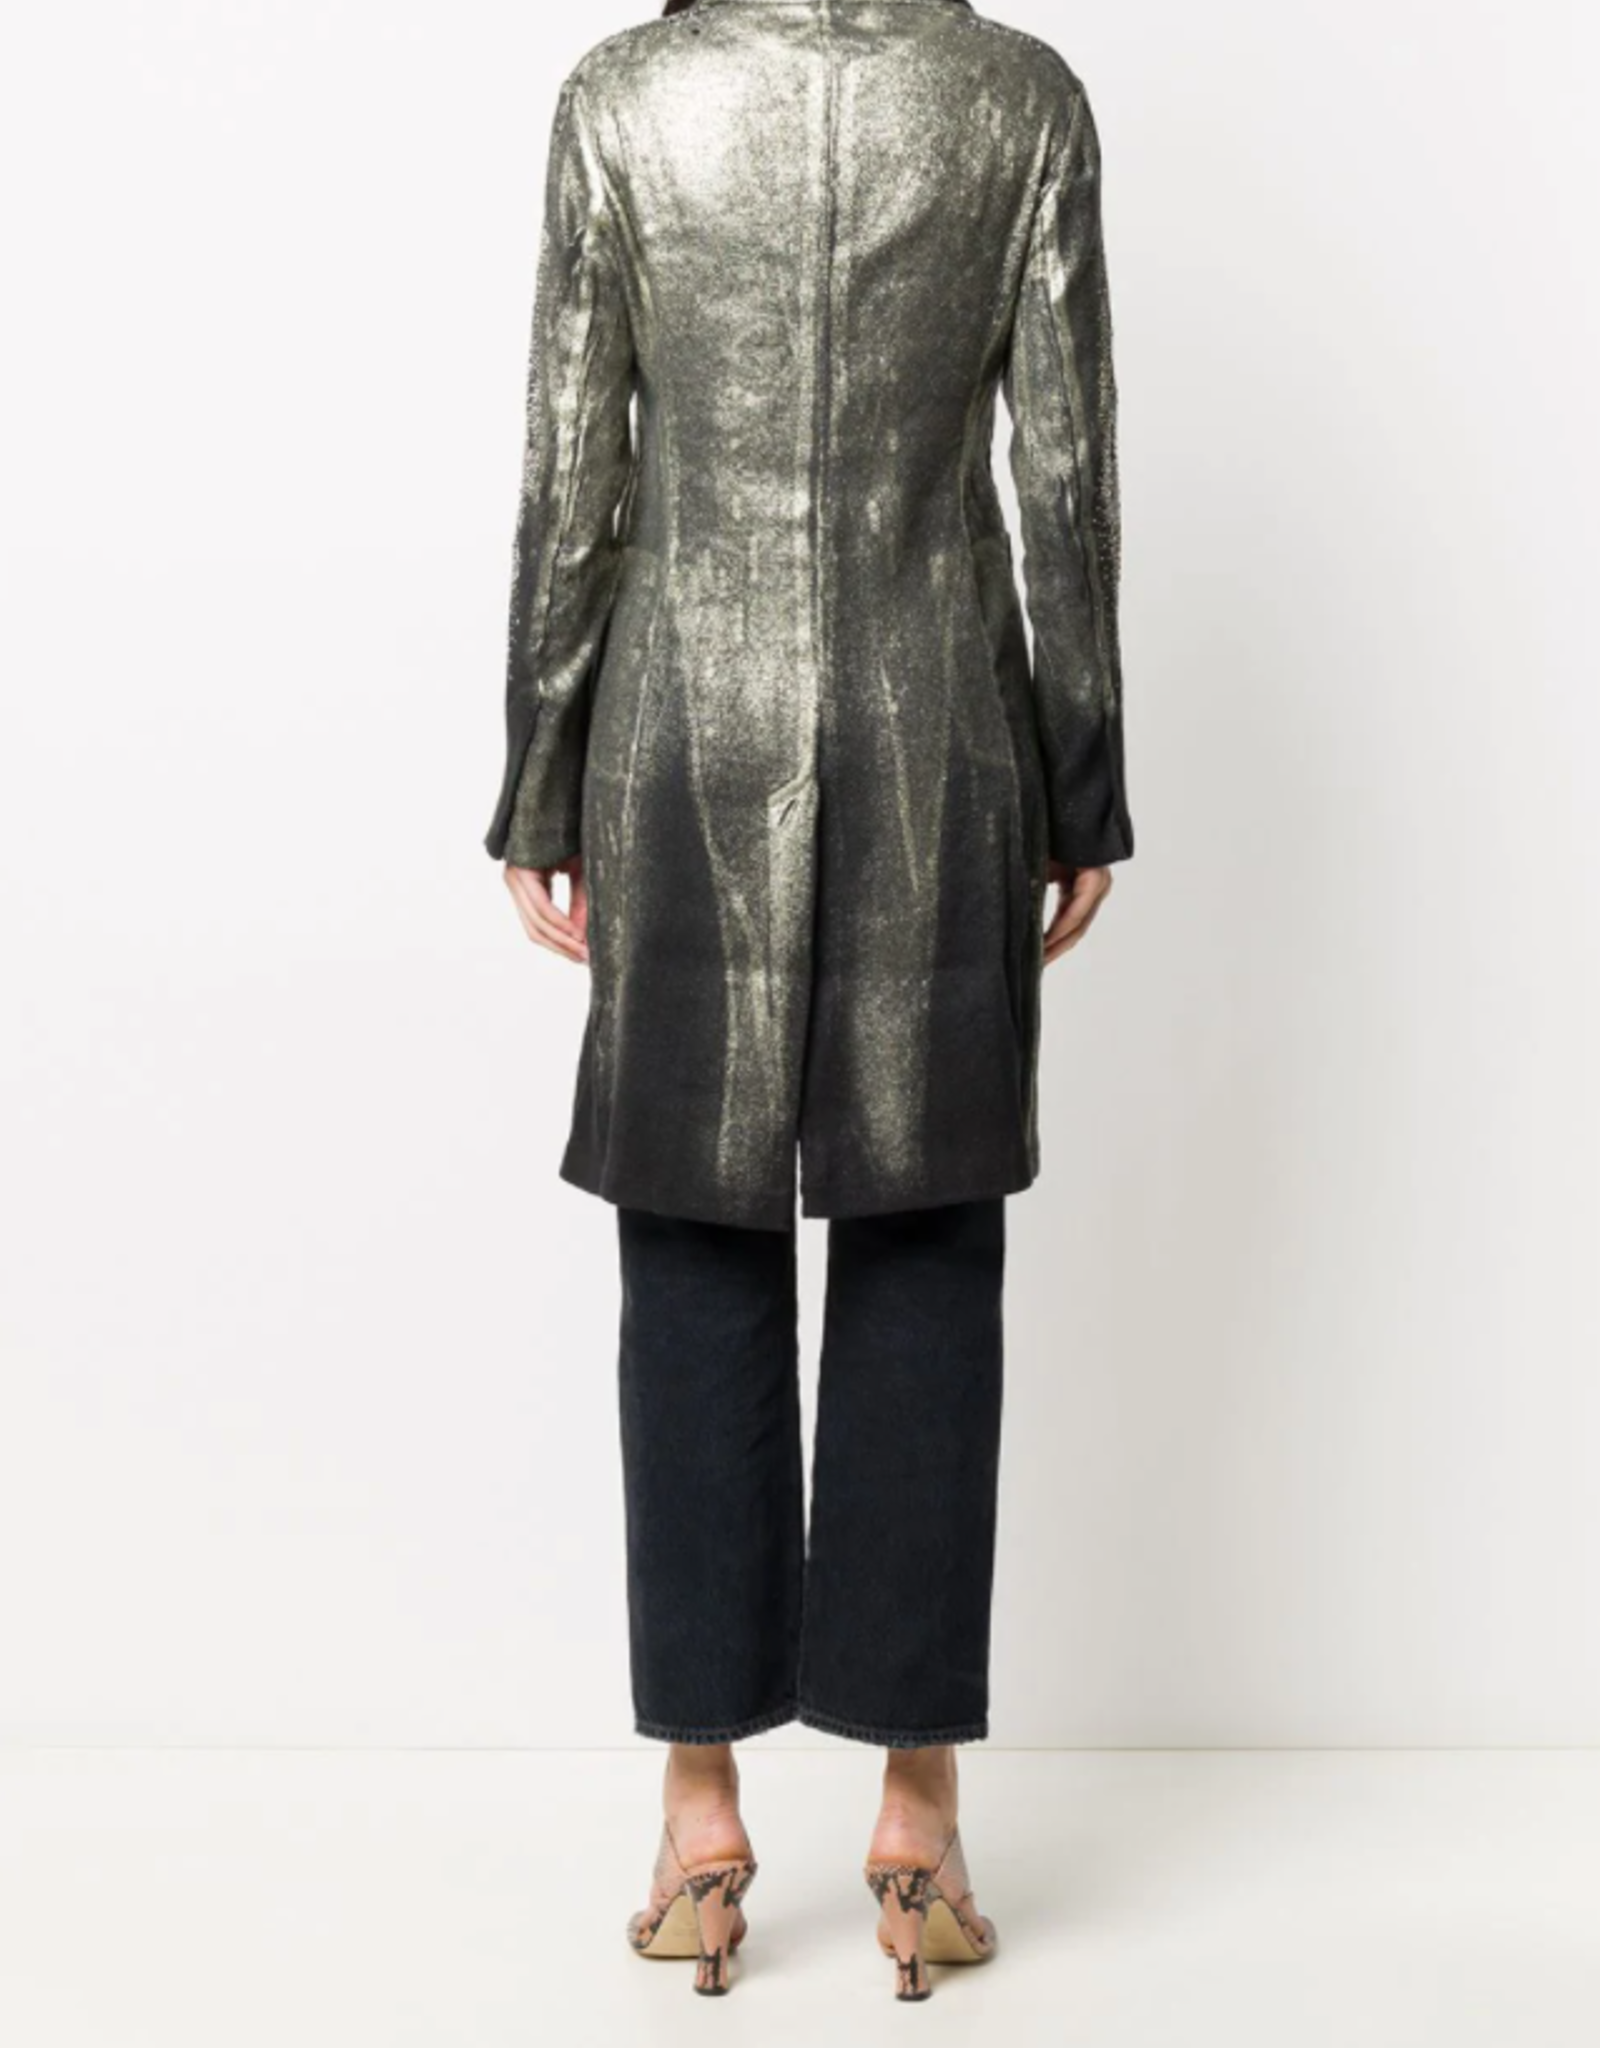 AVANT TOI - Metallic Jacket